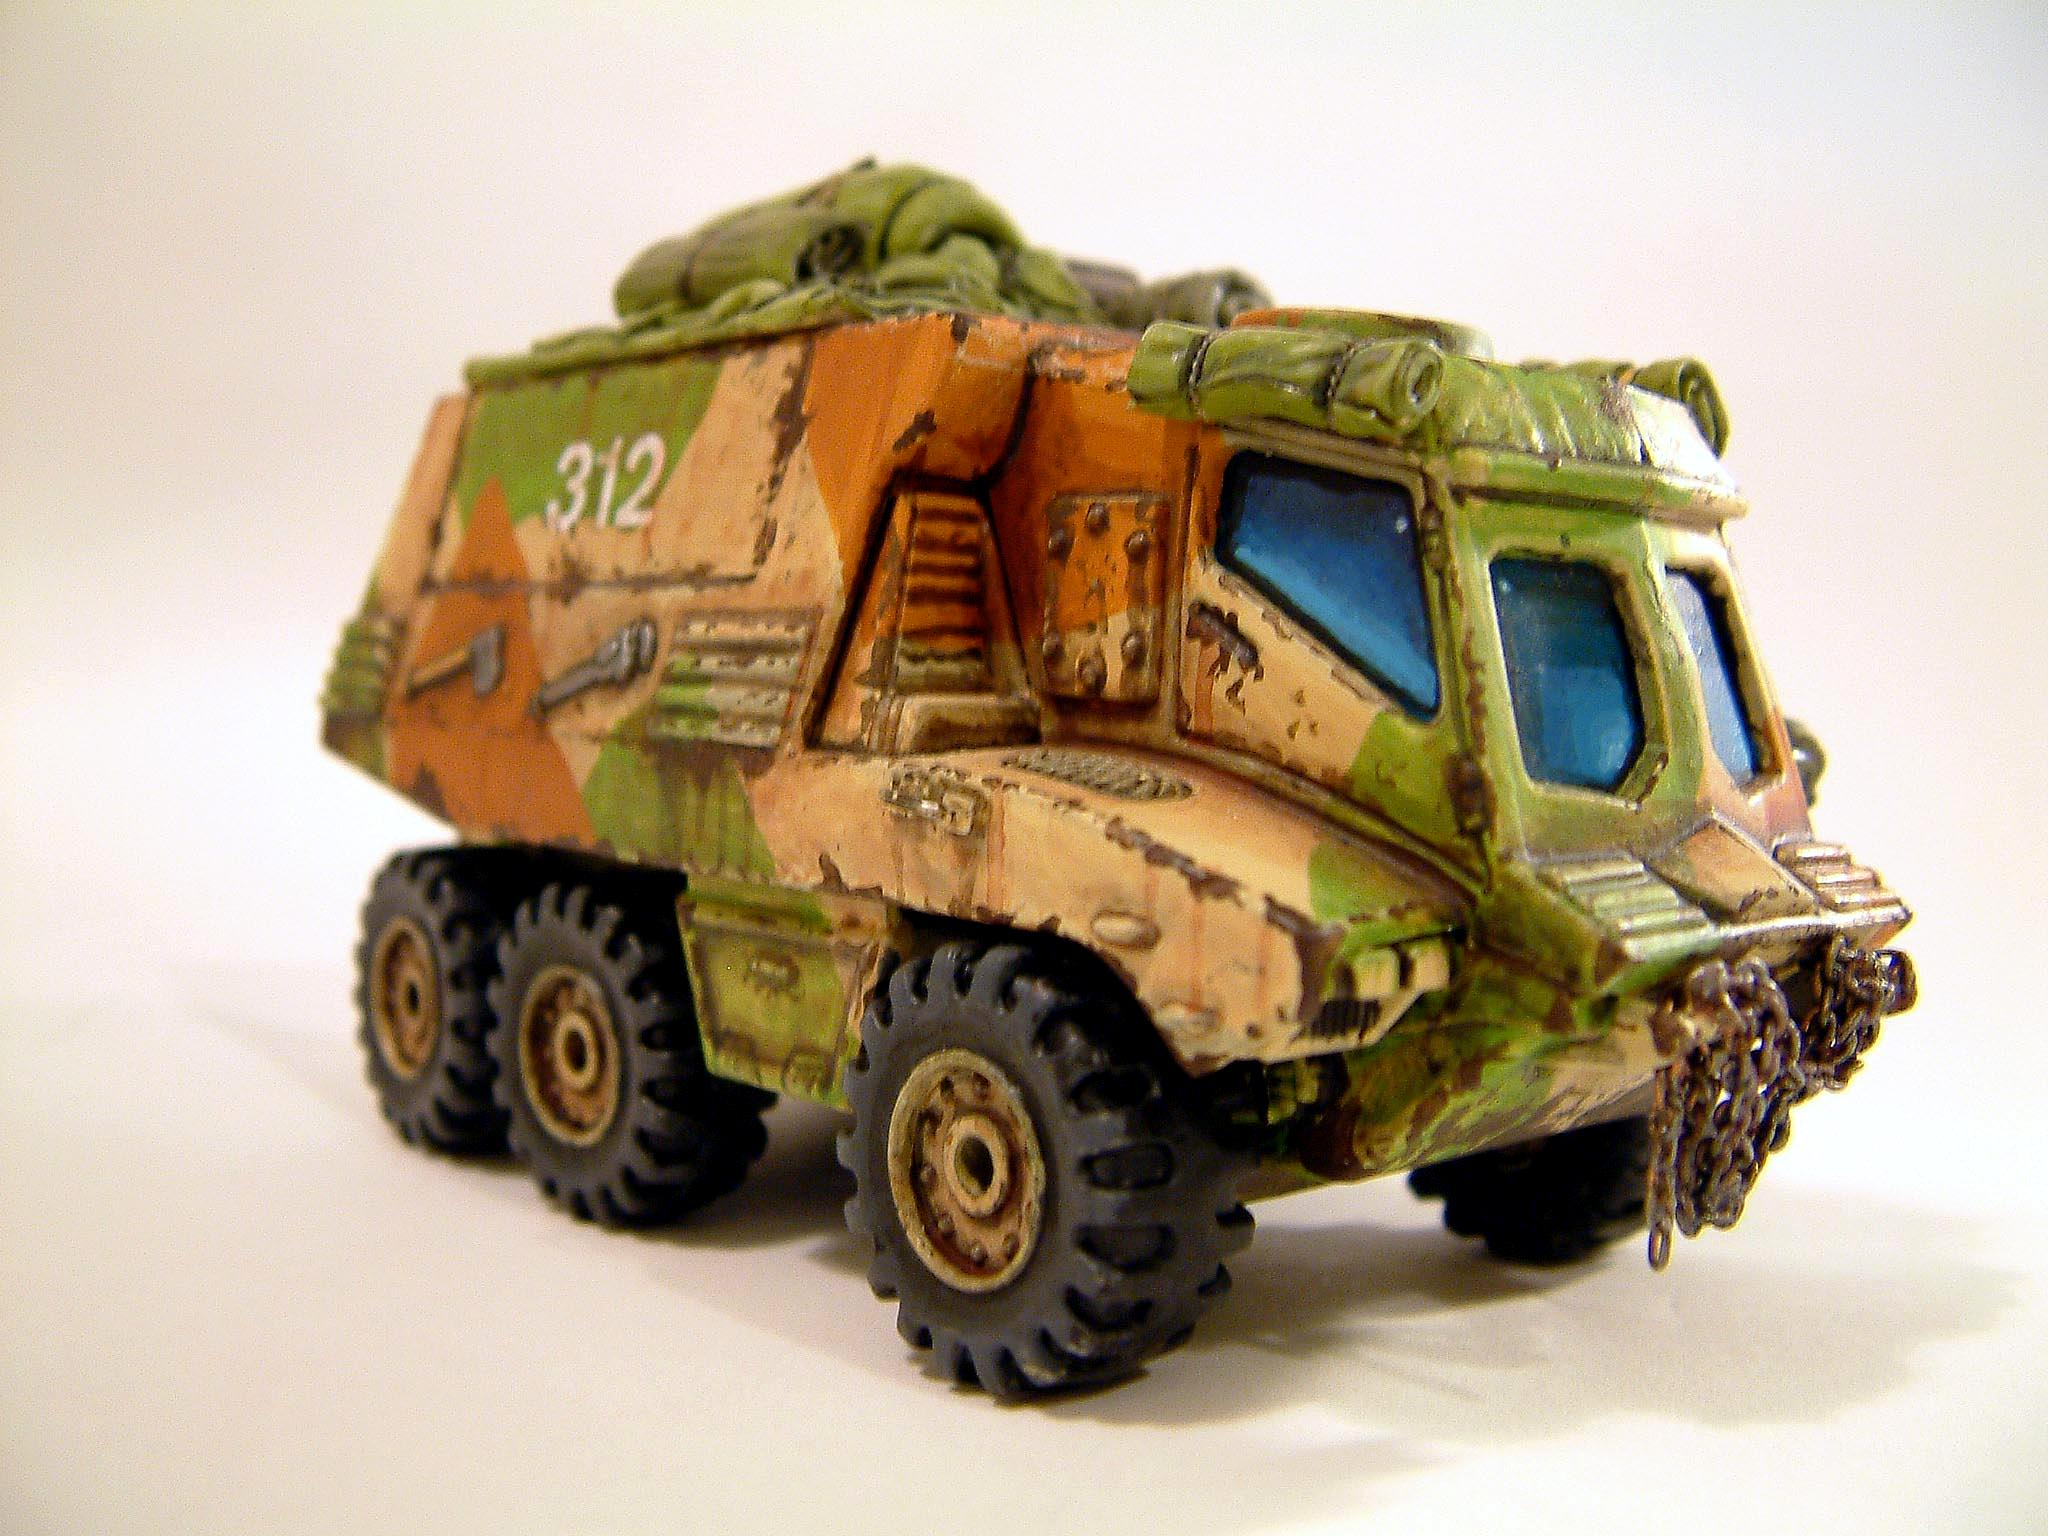 Apc, Armored Car, Ash Wastes, Cars, Fallout, Future Wars, Imperial Guard, Mercenary, Post Apocalypse, Raiders, Science-fiction